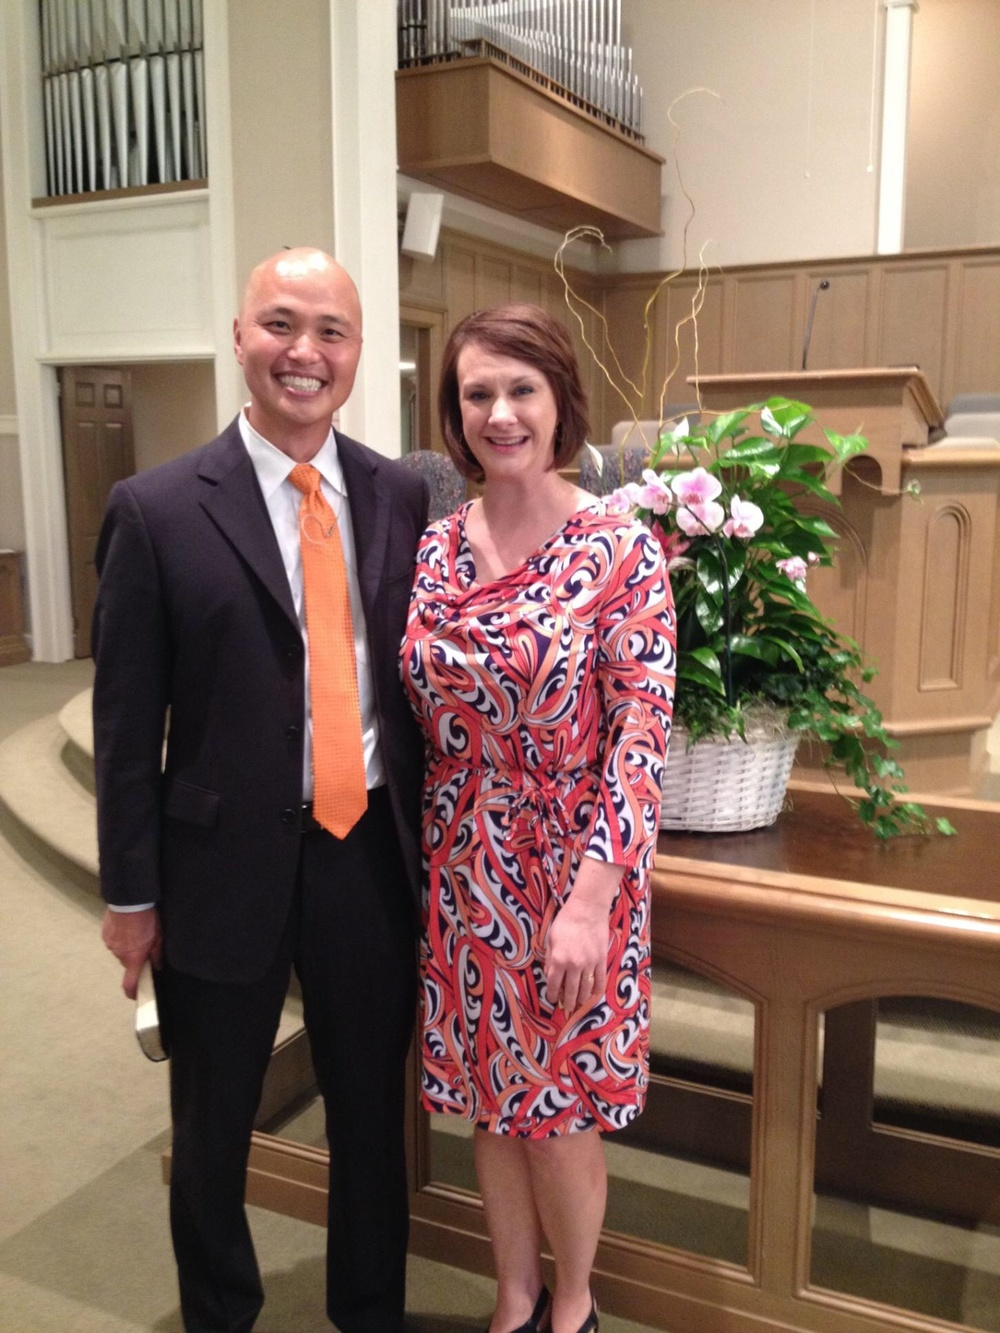 Rev. Andy Jung, and his wife Amy Jung.